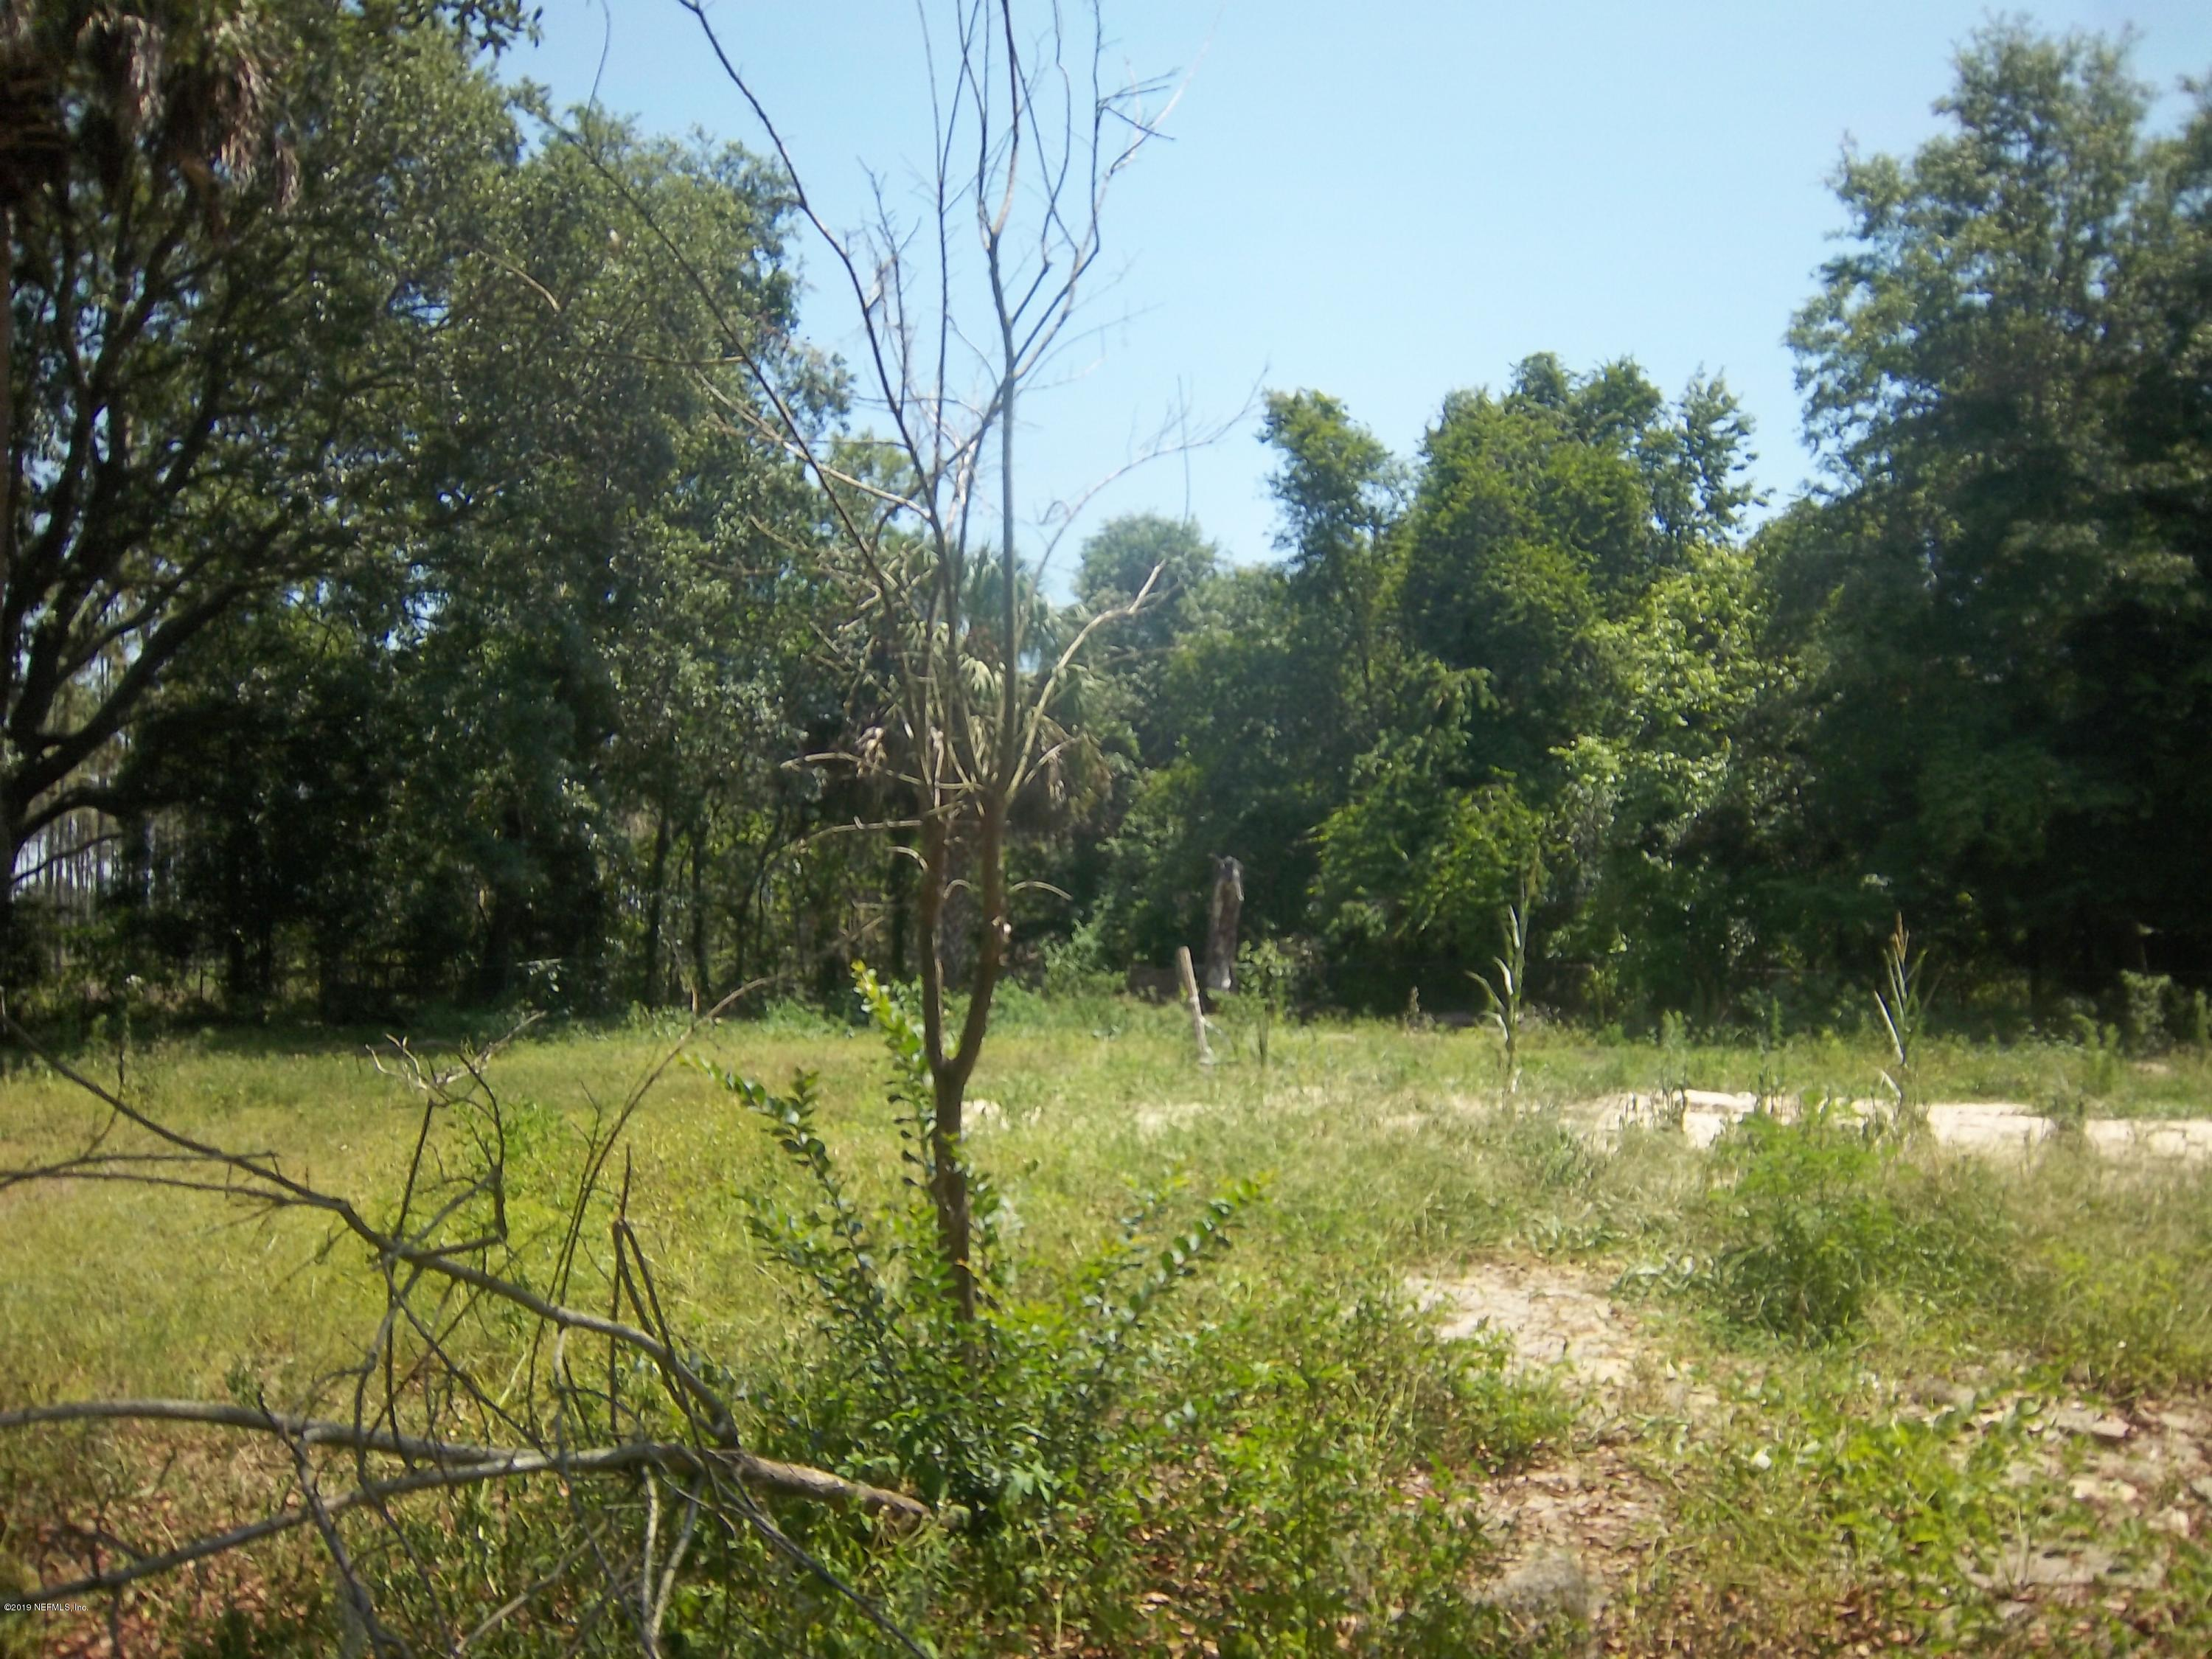 446 COUNTY RD 315, INTERLACHEN, FLORIDA 32148, ,Vacant land,For sale,COUNTY RD 315,997043